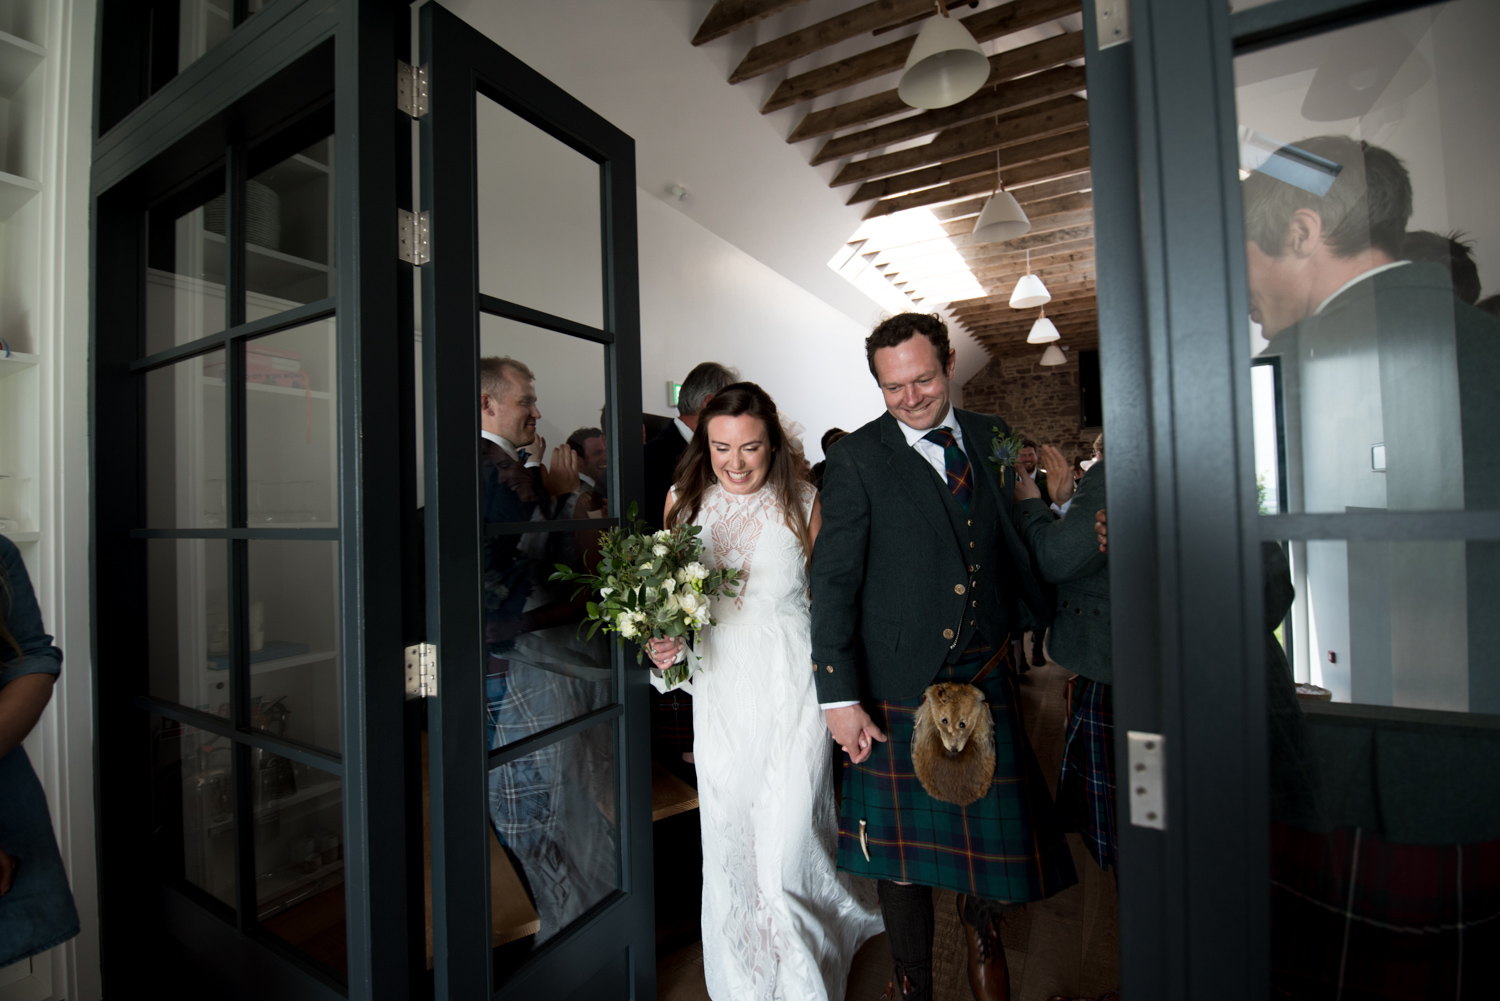 PERTHSHIRE WEDDING, GUARDSWALL FARM143342-2.jpg